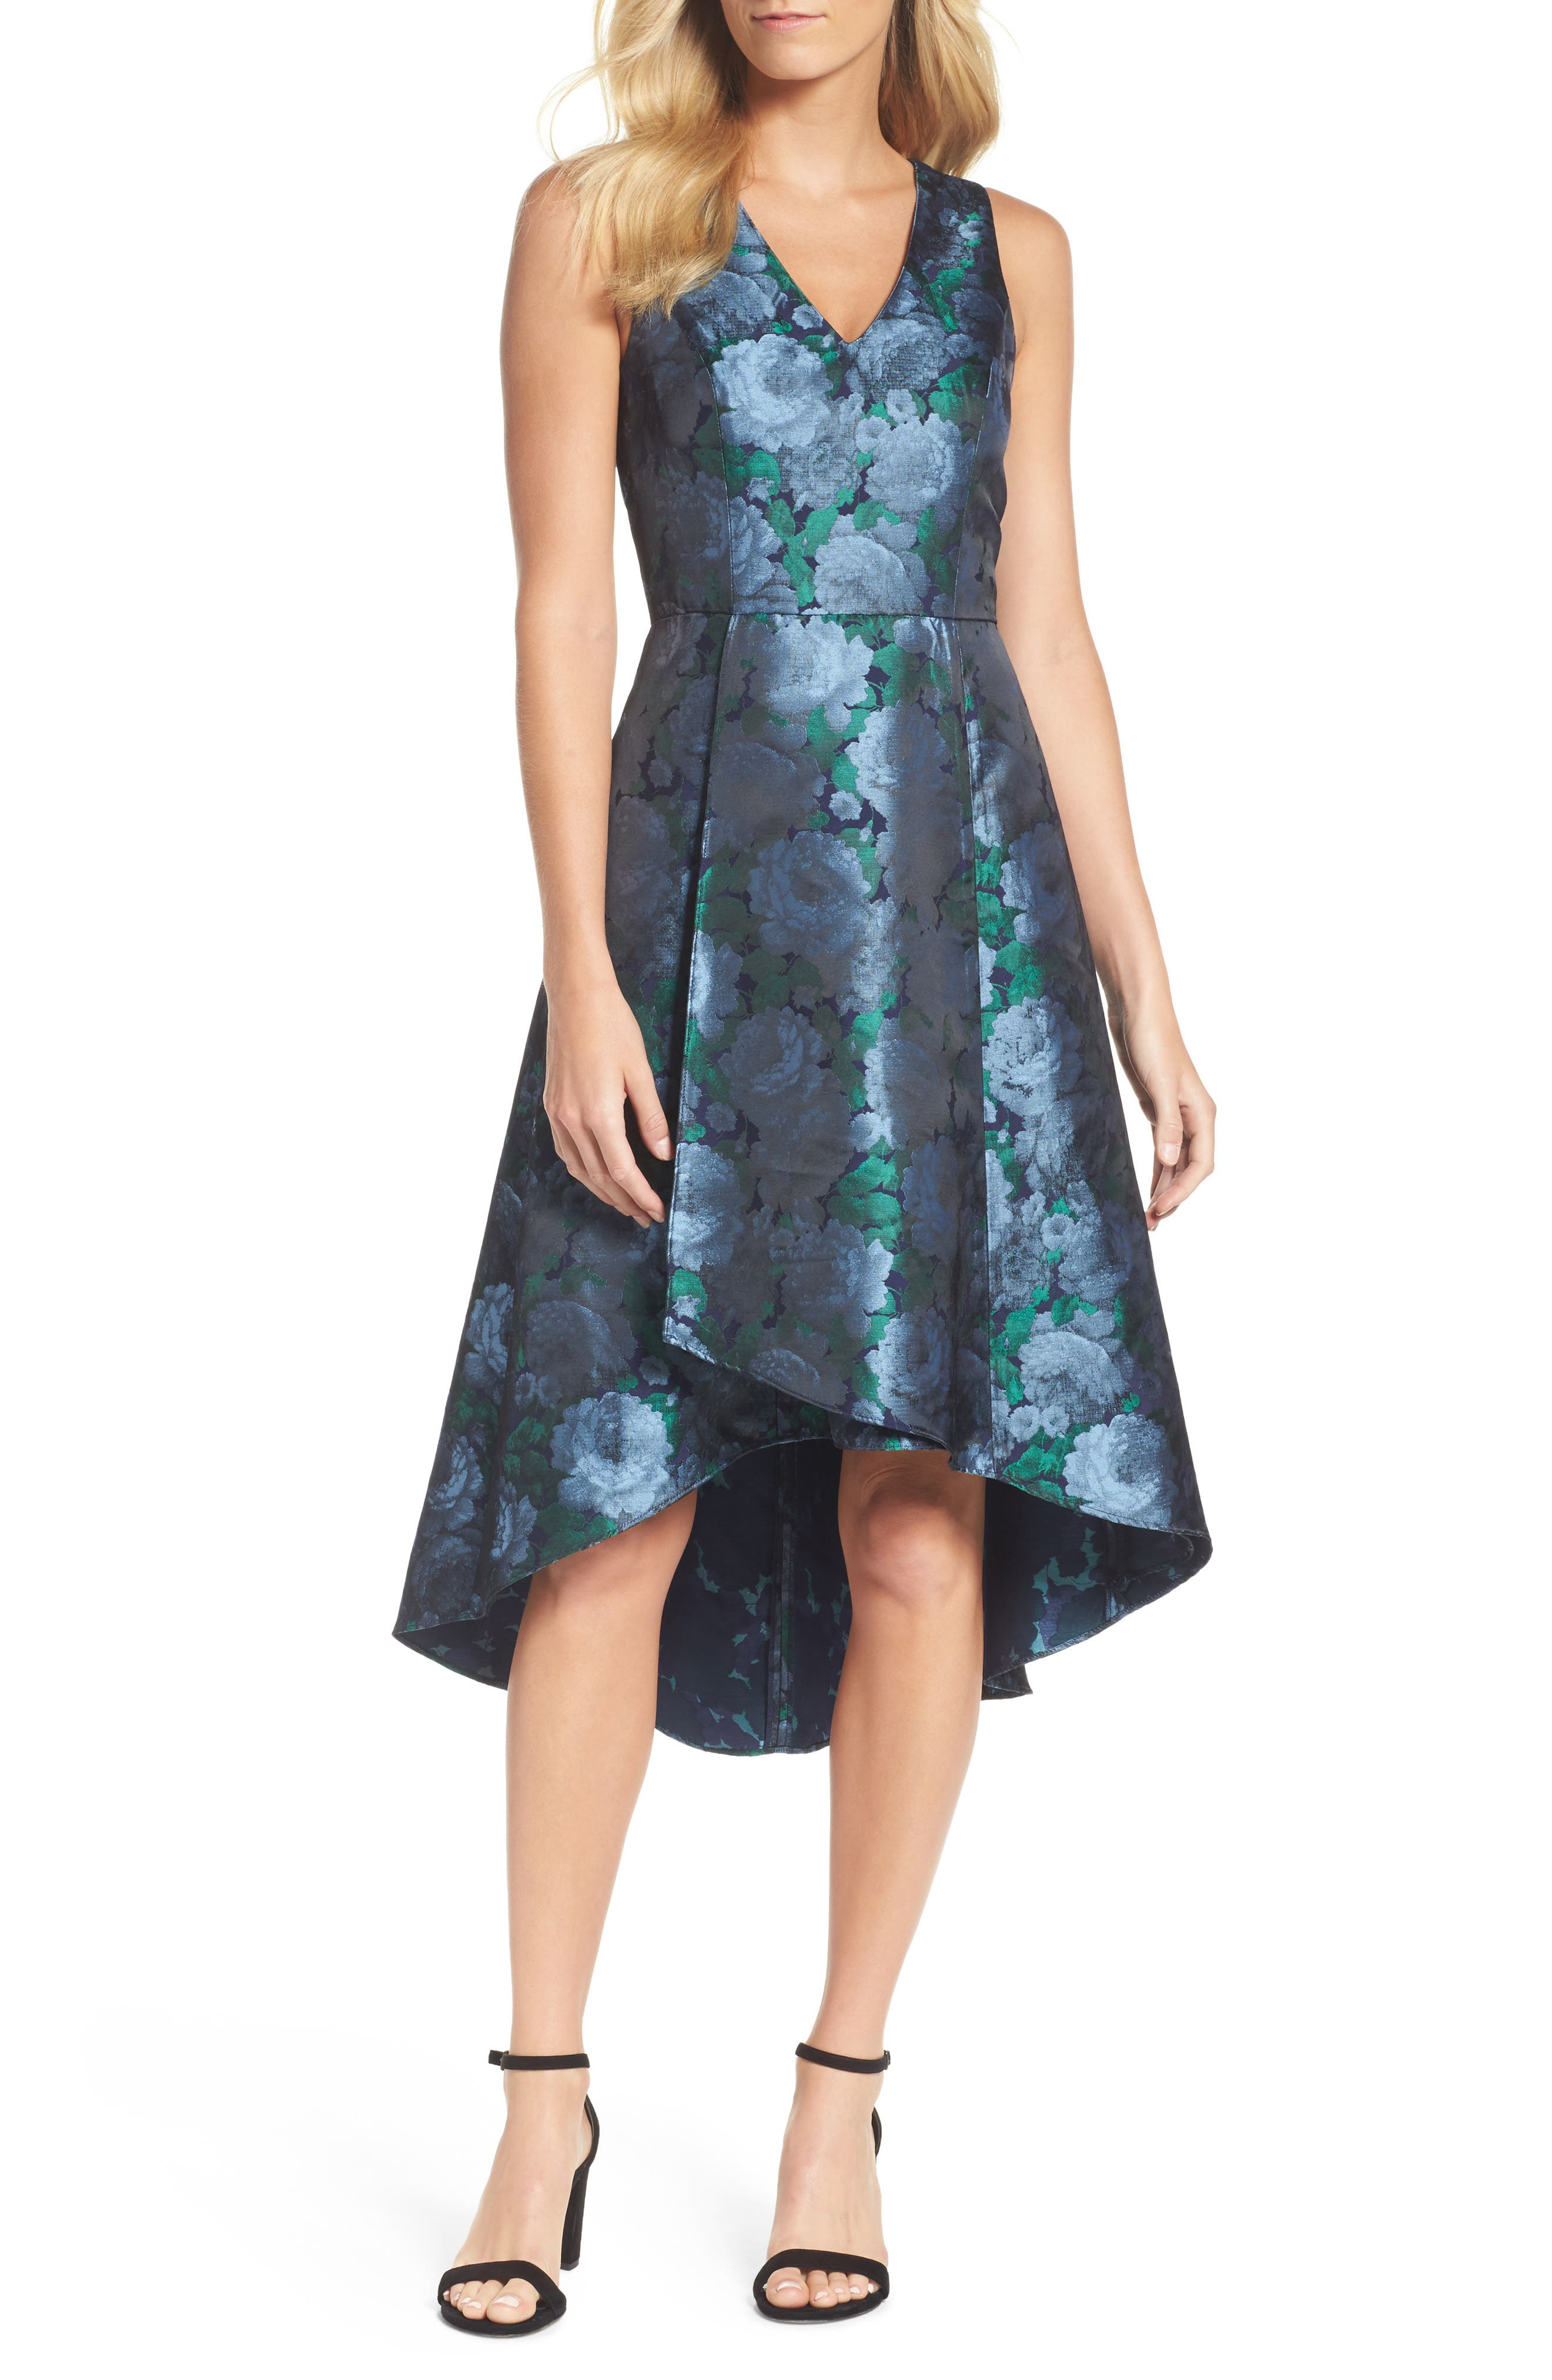 Alternate Image 1 Selected - Adrianna Papell Brocade High/Low Dress